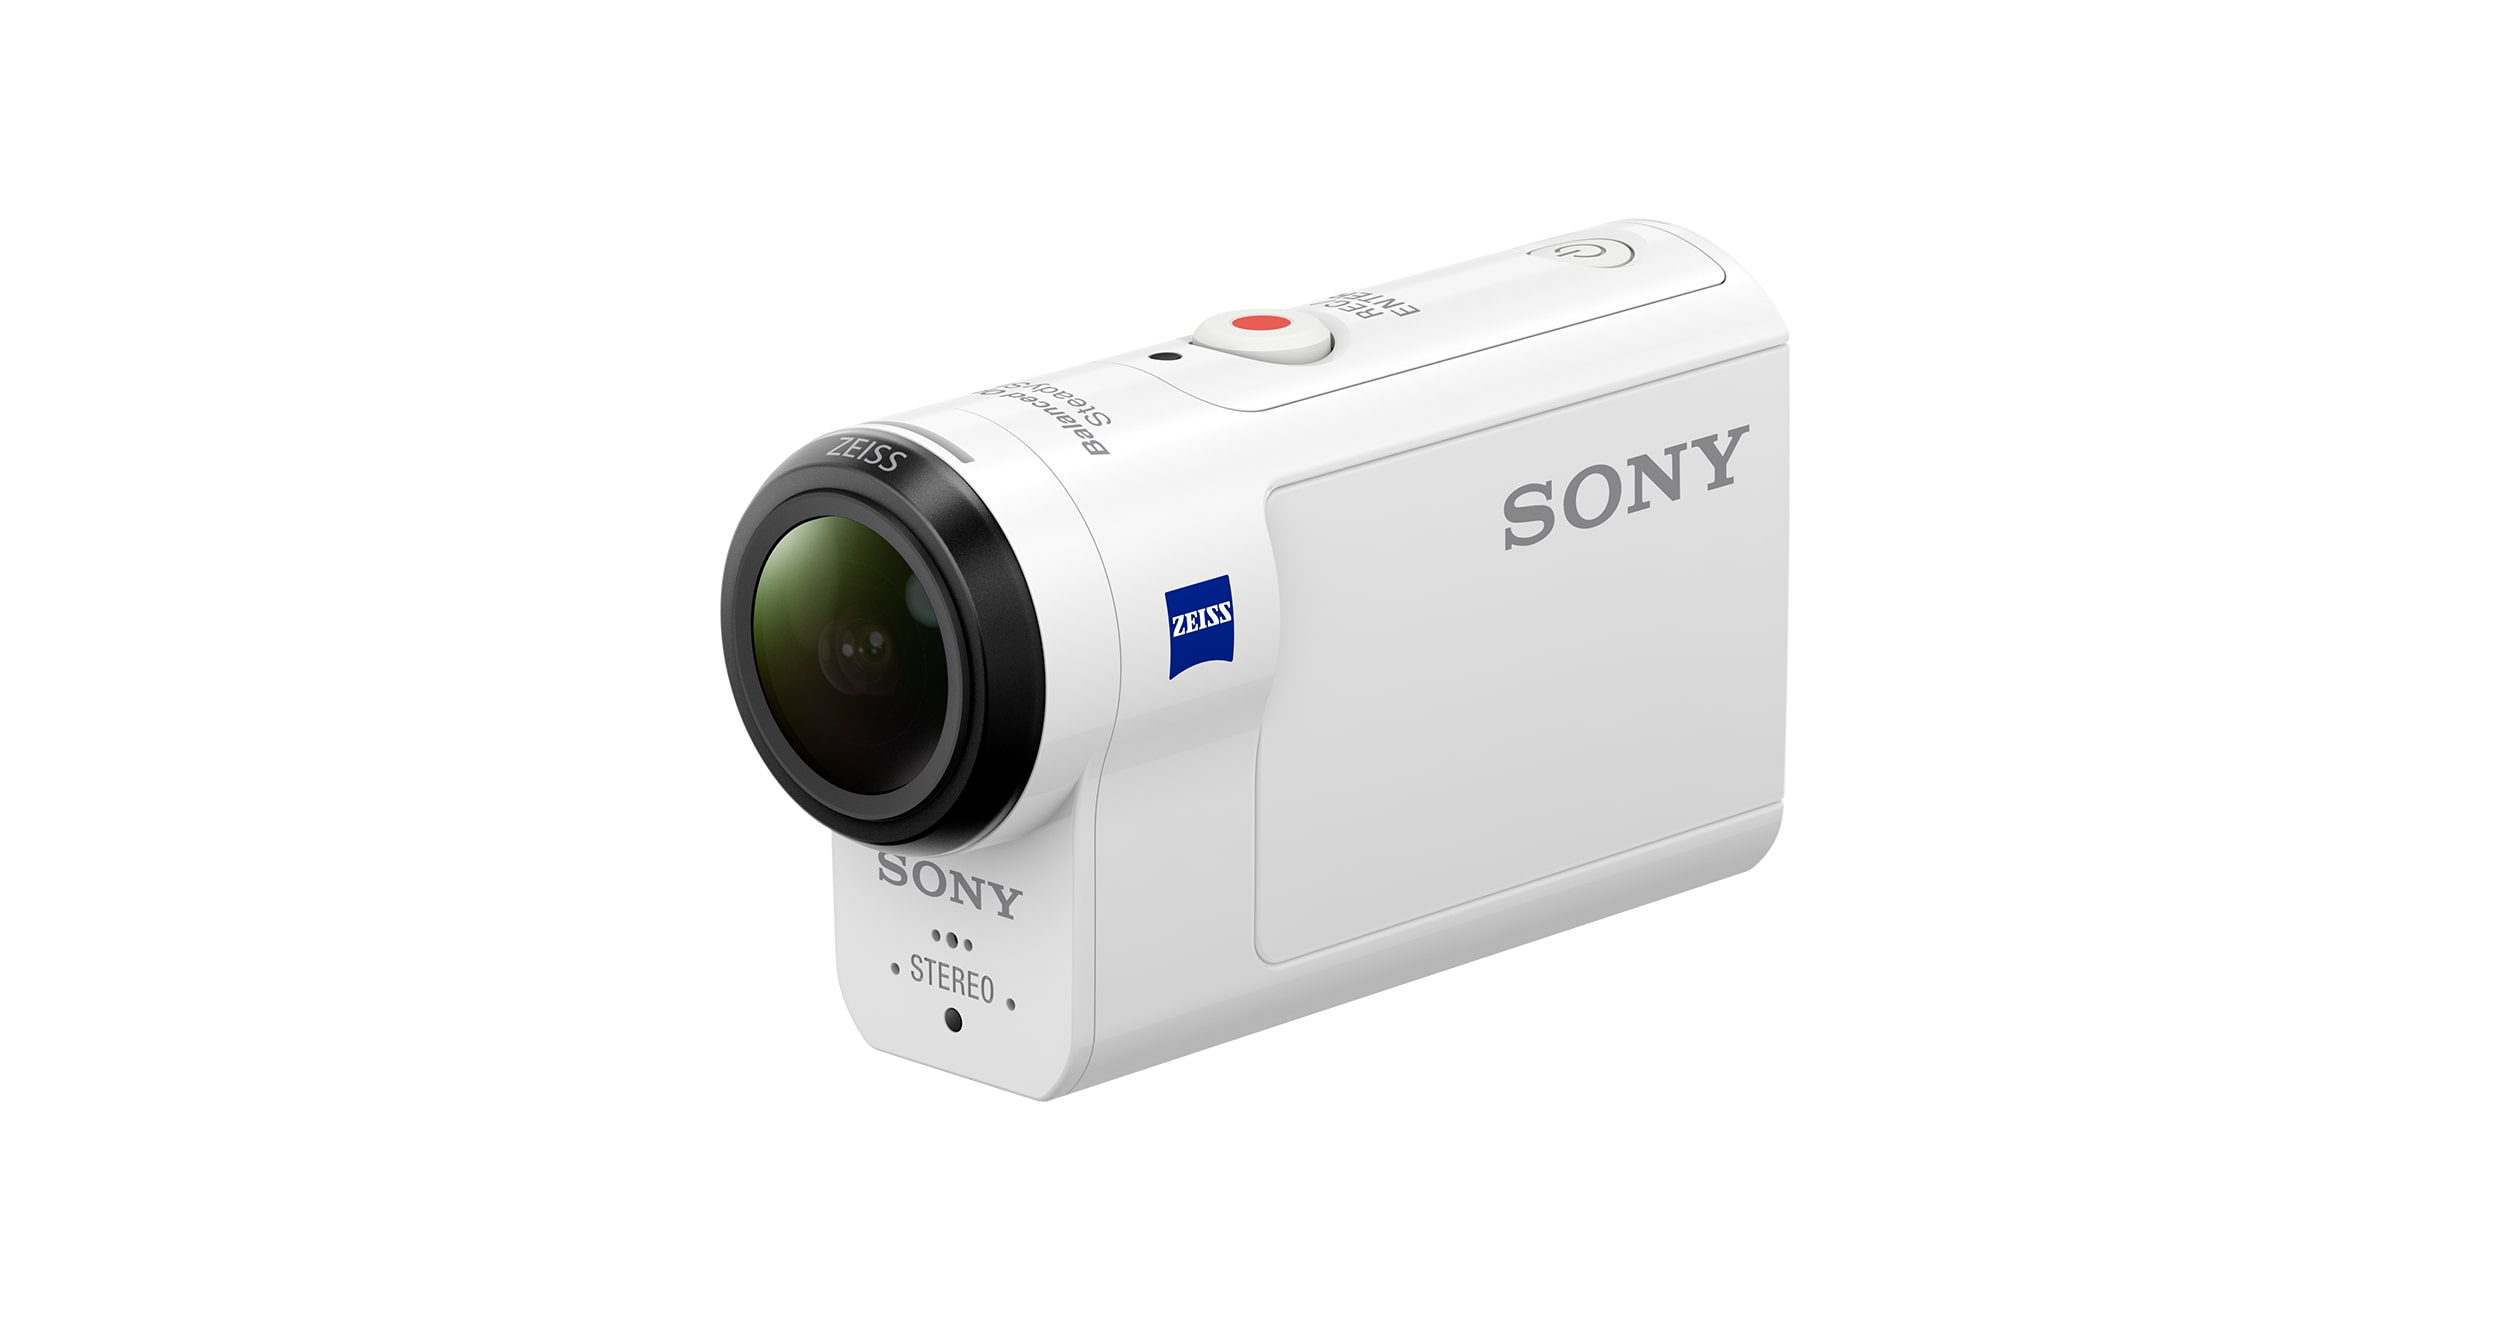 HDR-AS300 Action Cam with Wi-Fi | HDR-AS300/HDR-AS300R | Sony US